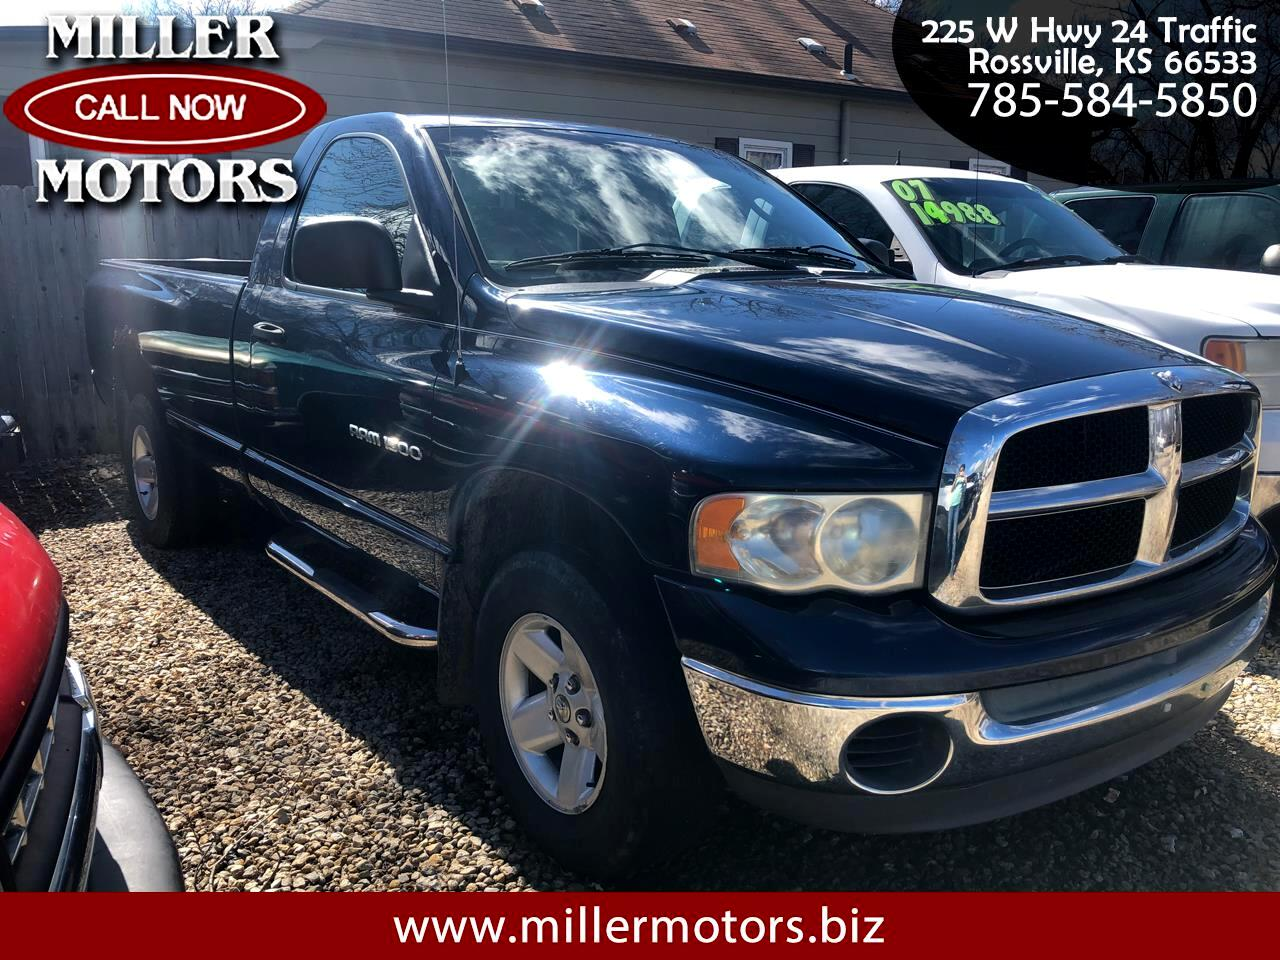 2003 Dodge Ram 1500 Reg. Cab Short Bed 4WD